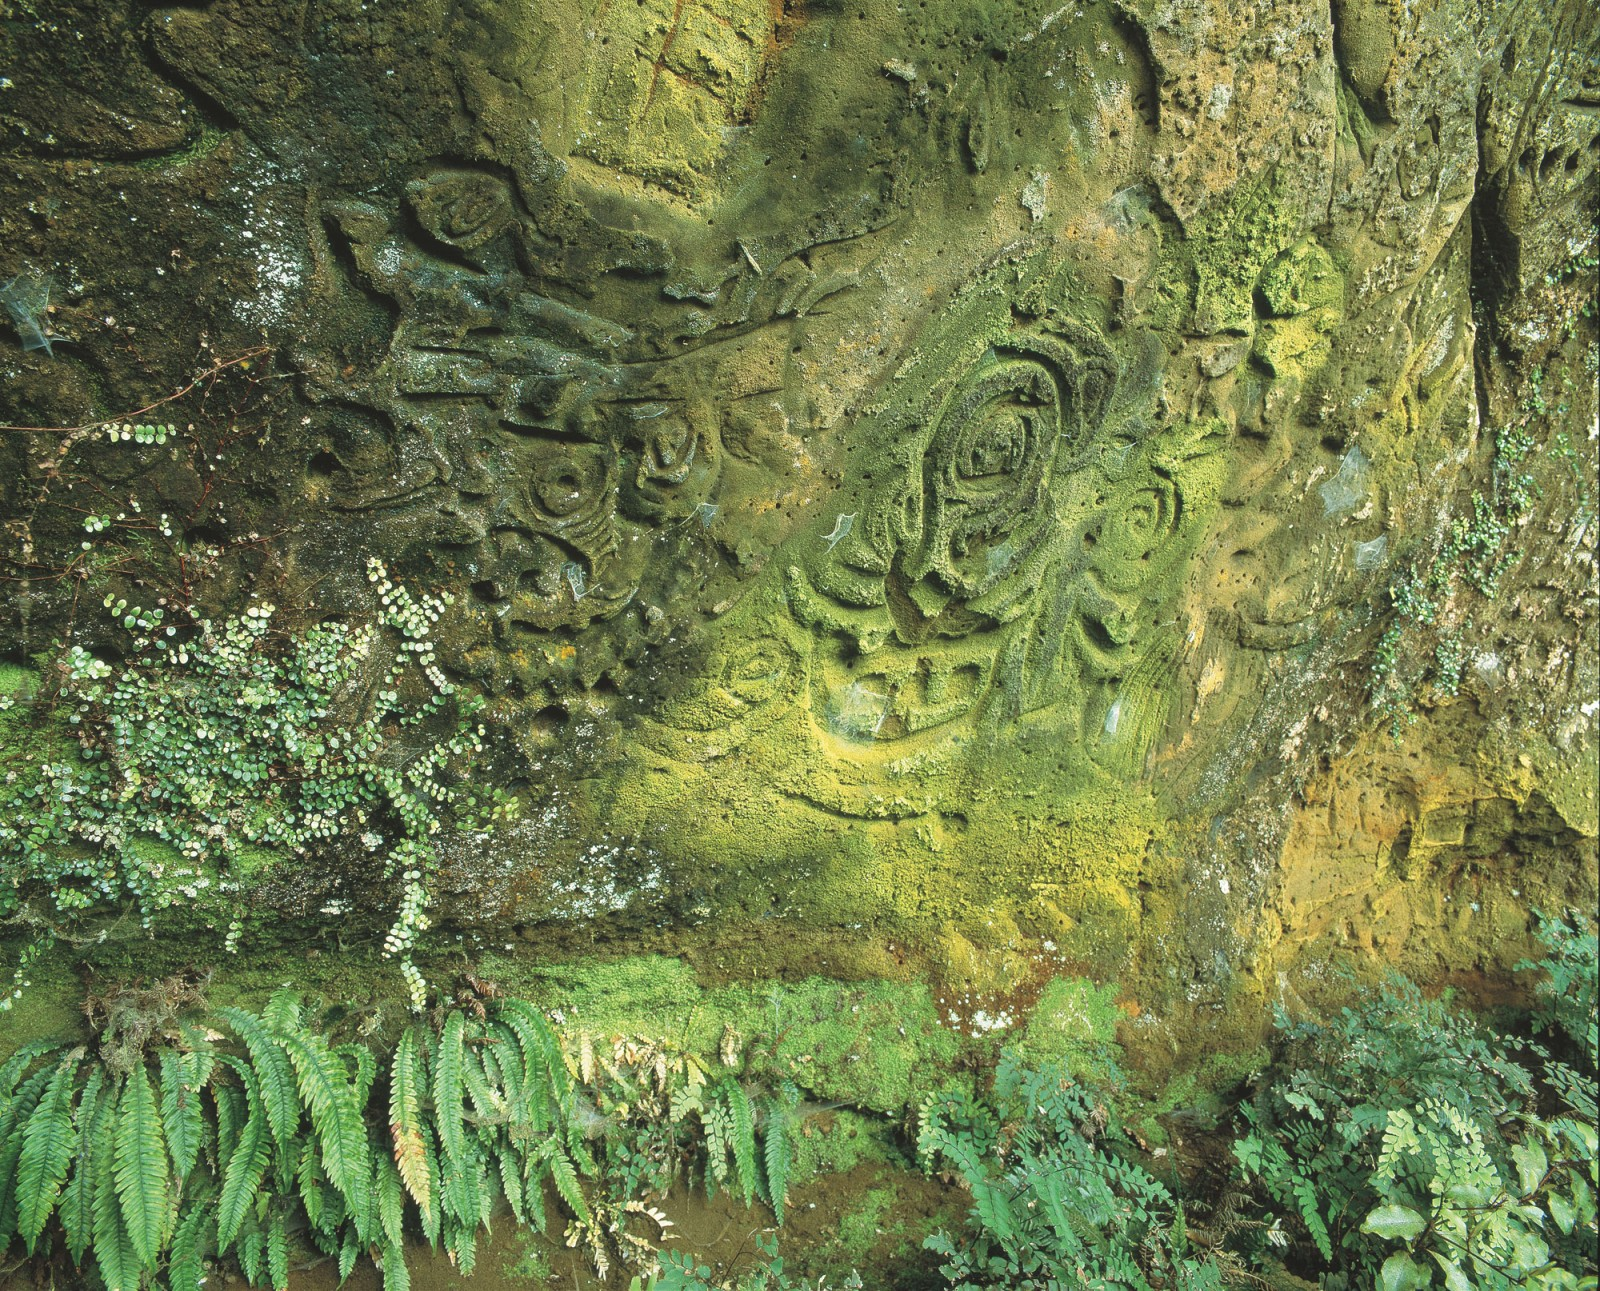 "In Waverley, Taranaki, a frieze of spirals, manaia, carved lizards and richly interwoven anthropomorphic forms cover a 20 sqm sandstone bank, the southern-most rock art site in the North Island. First noted by Europeans in 1895, the degradation of these carvings has been recorded but is ongoing. A conservator's report in 1993 recommended upgrading the barrier, stabilising erosion, installing signage and setting up a monitoring programme. None of these measures have been implemented. Today the impact of water, weathering, vegetation and vandalism is obvious. Part of the bank has slipped, tree roots bar access and the existing barrier fence is damaged. ""It's important for people to see it,"" says current farm owner John Hickey, ""but something needs to be done to make it more accessible."" The local Rotary club is now working on a project to improve access and security."